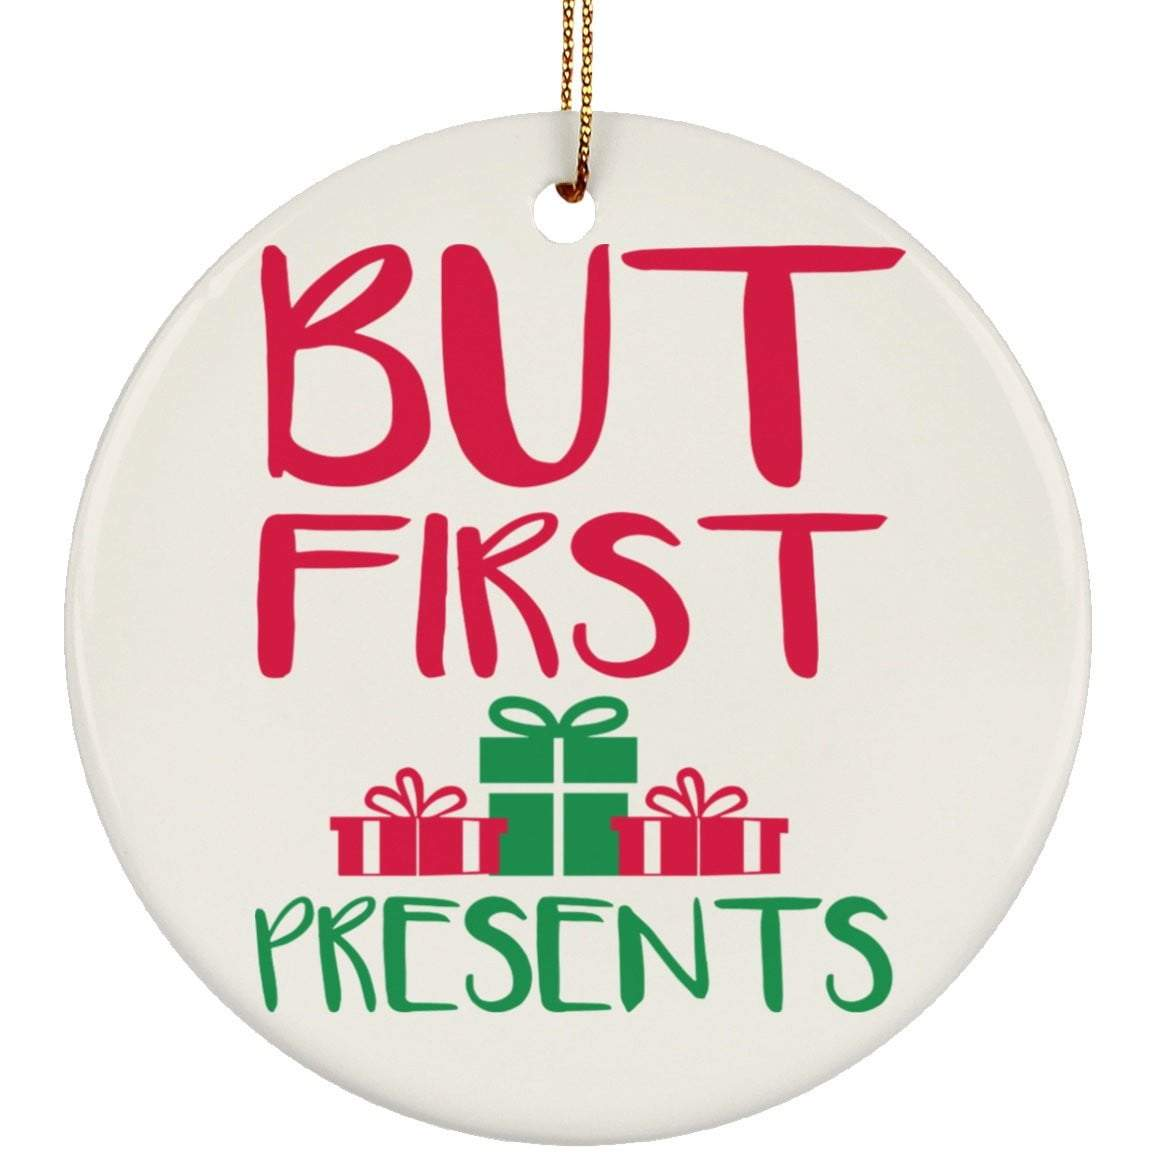 BUT FIRST PRESENTS Christmas Ceramic Circle Ornament